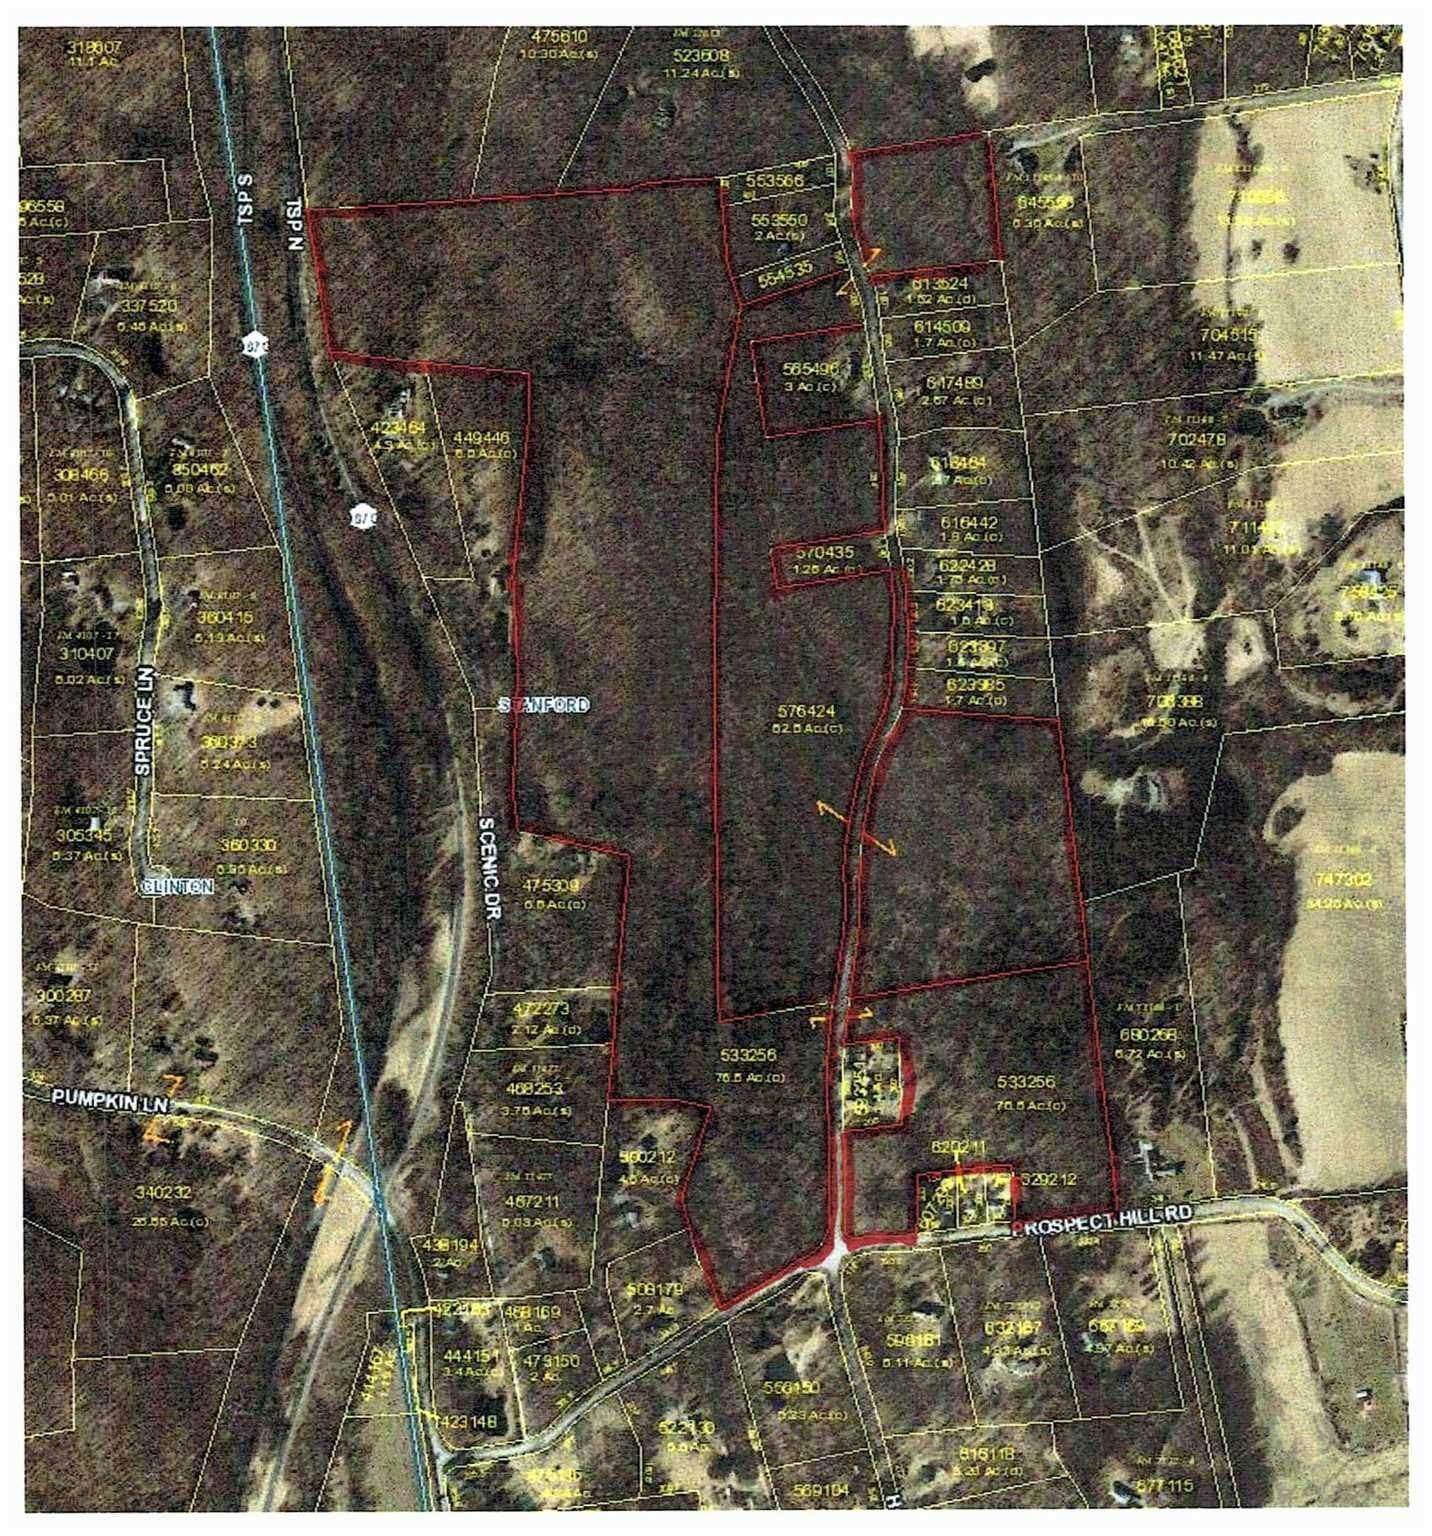 Land for Sale at 339 PROSPECT HILL ROAD Stanfordville, New York 12514 United States